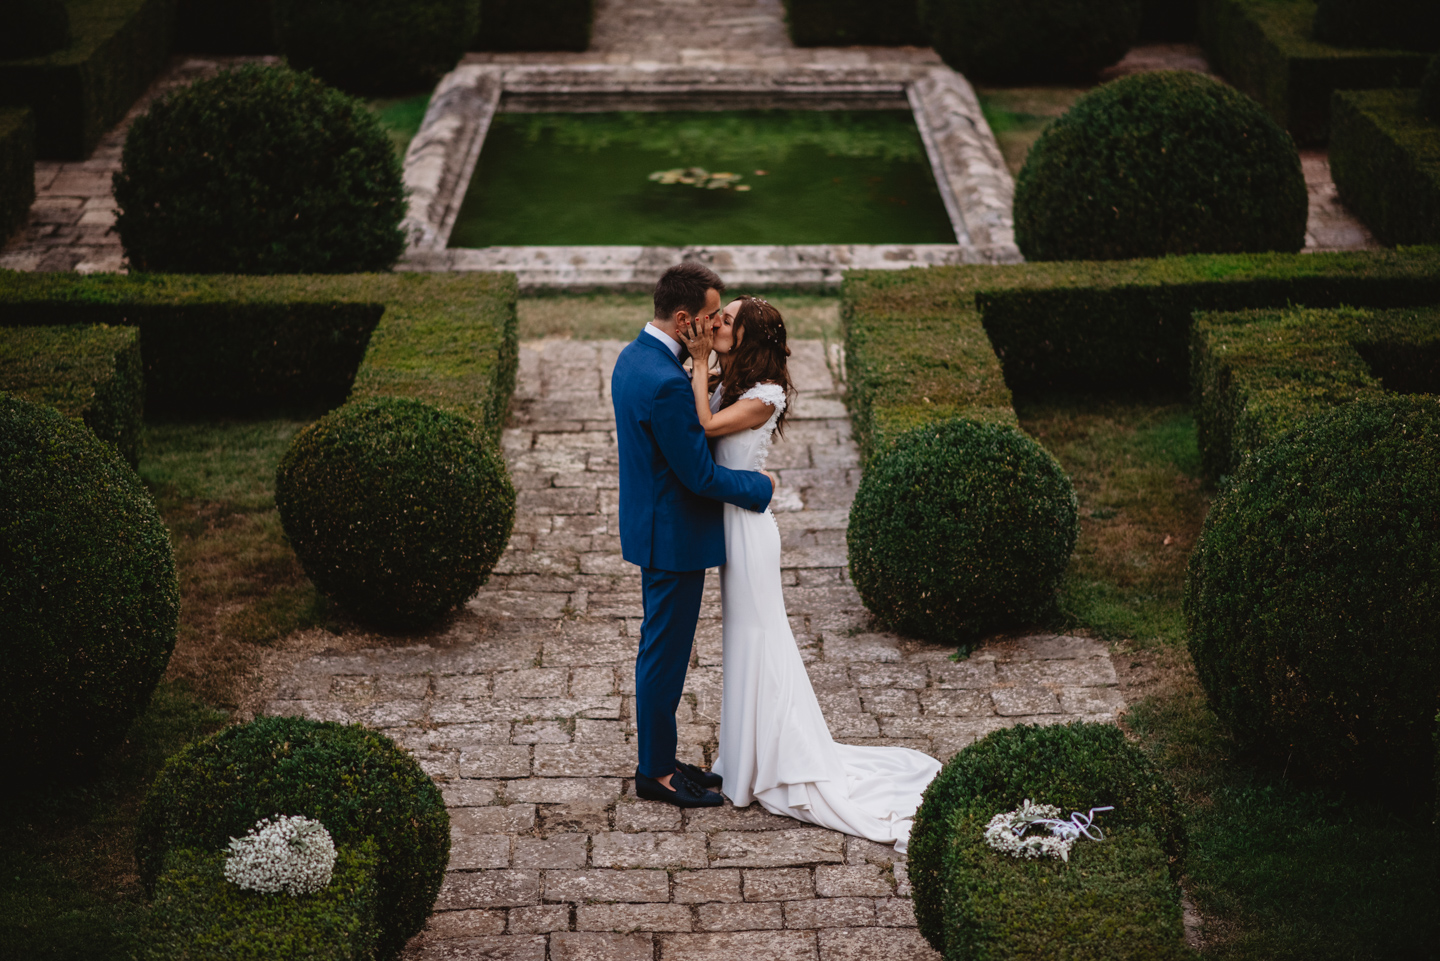 Photographier Mariage Sienne Florence Toscane